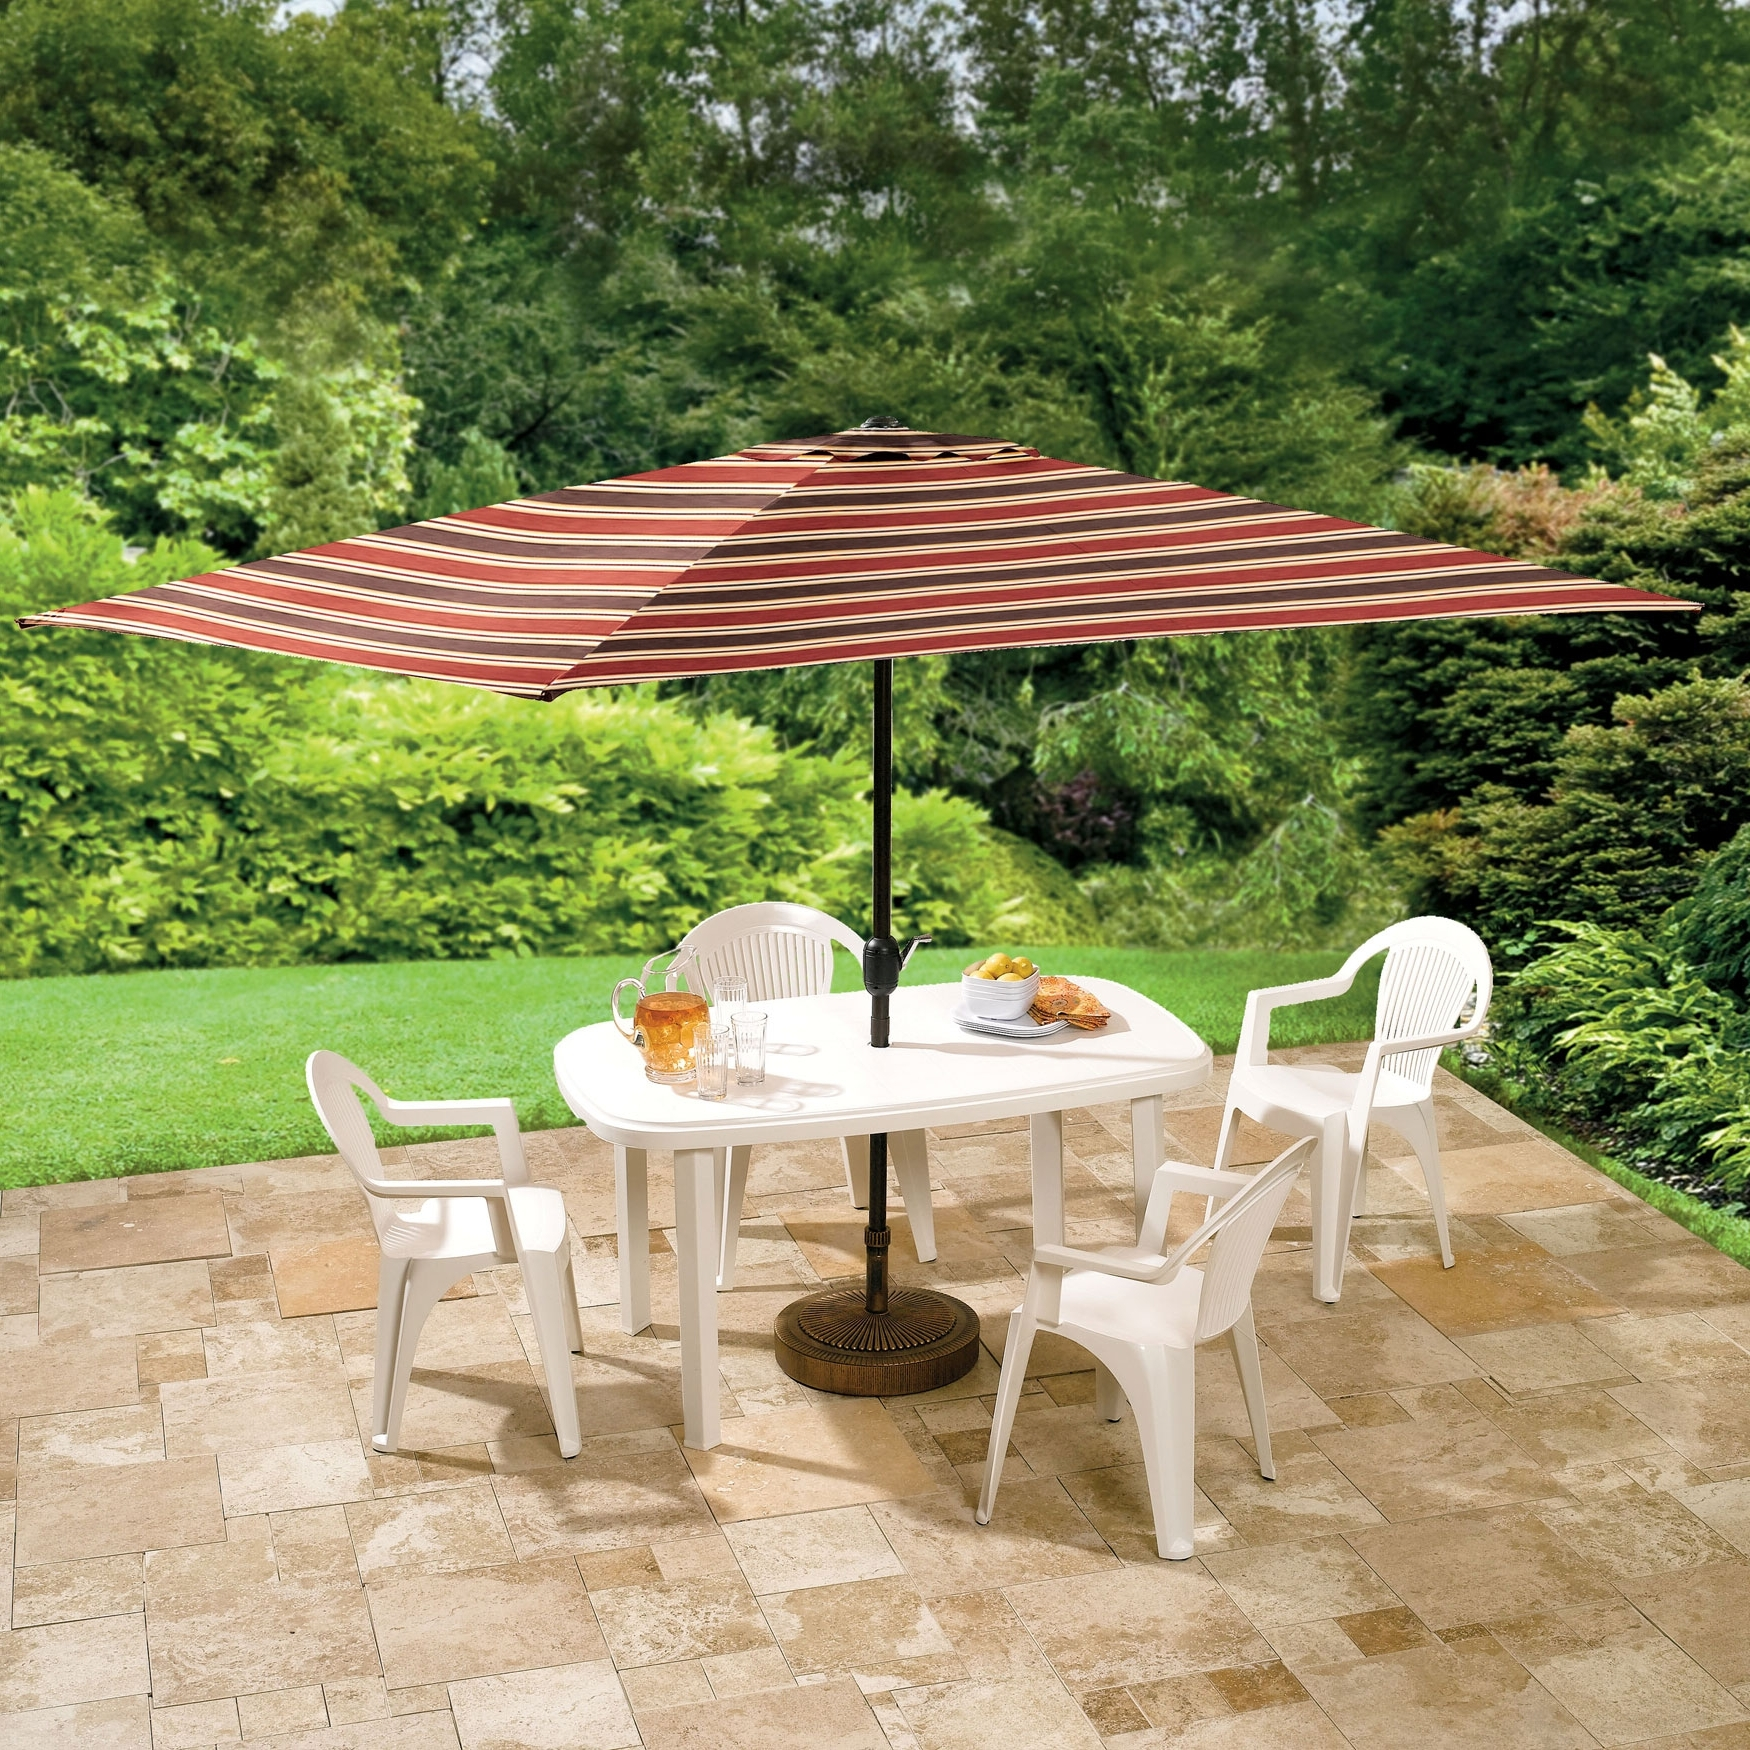 Offset Rectangular Patio Umbrella : Rectangular Patio Umbrella Intended For Popular Offset Rectangular Patio Umbrellas (View 13 of 20)